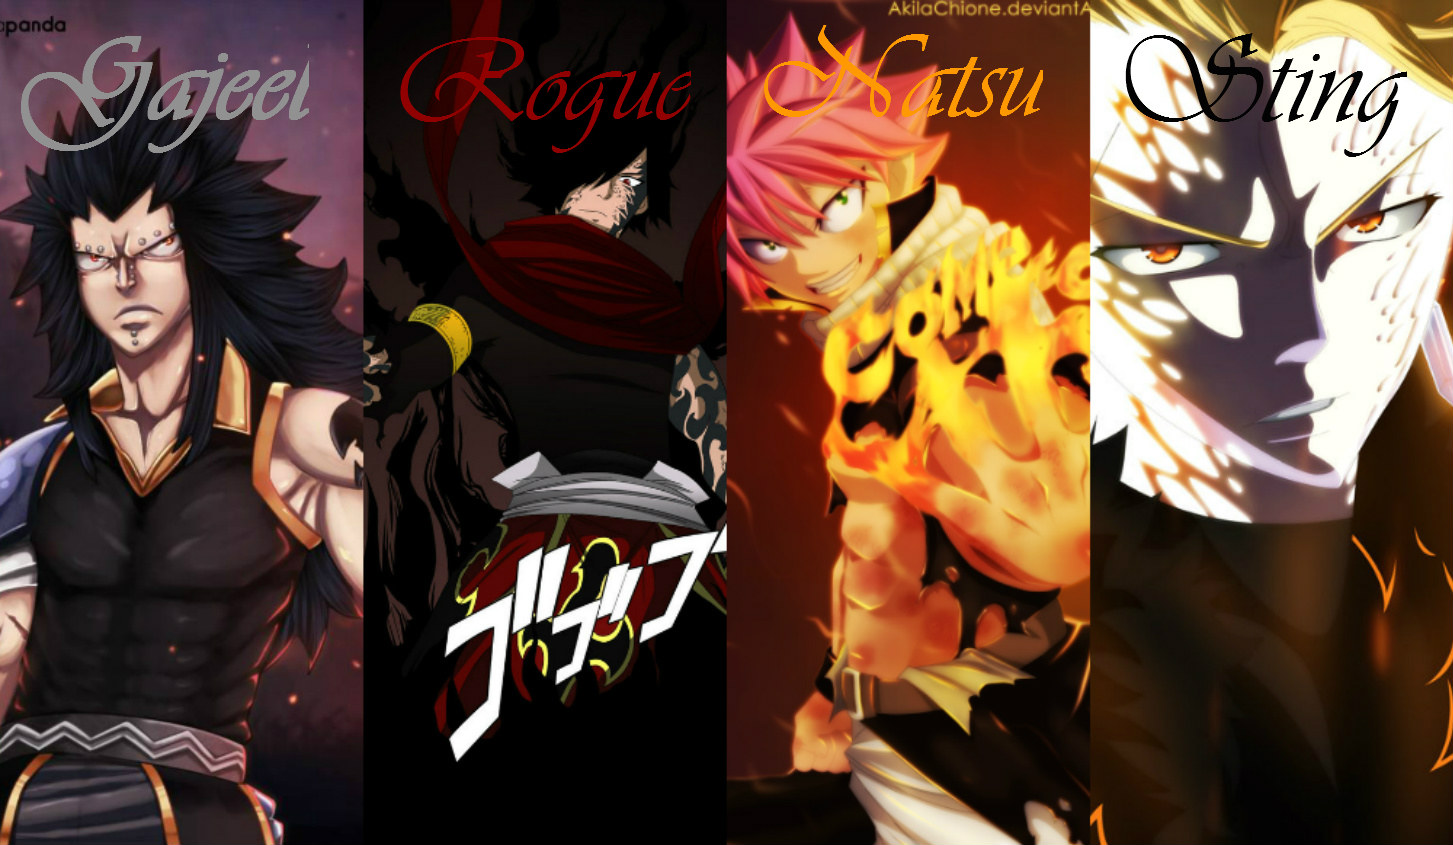 Fairy Tail Images The 4 Dragon Slayers HD Wallpaper And Background Photos